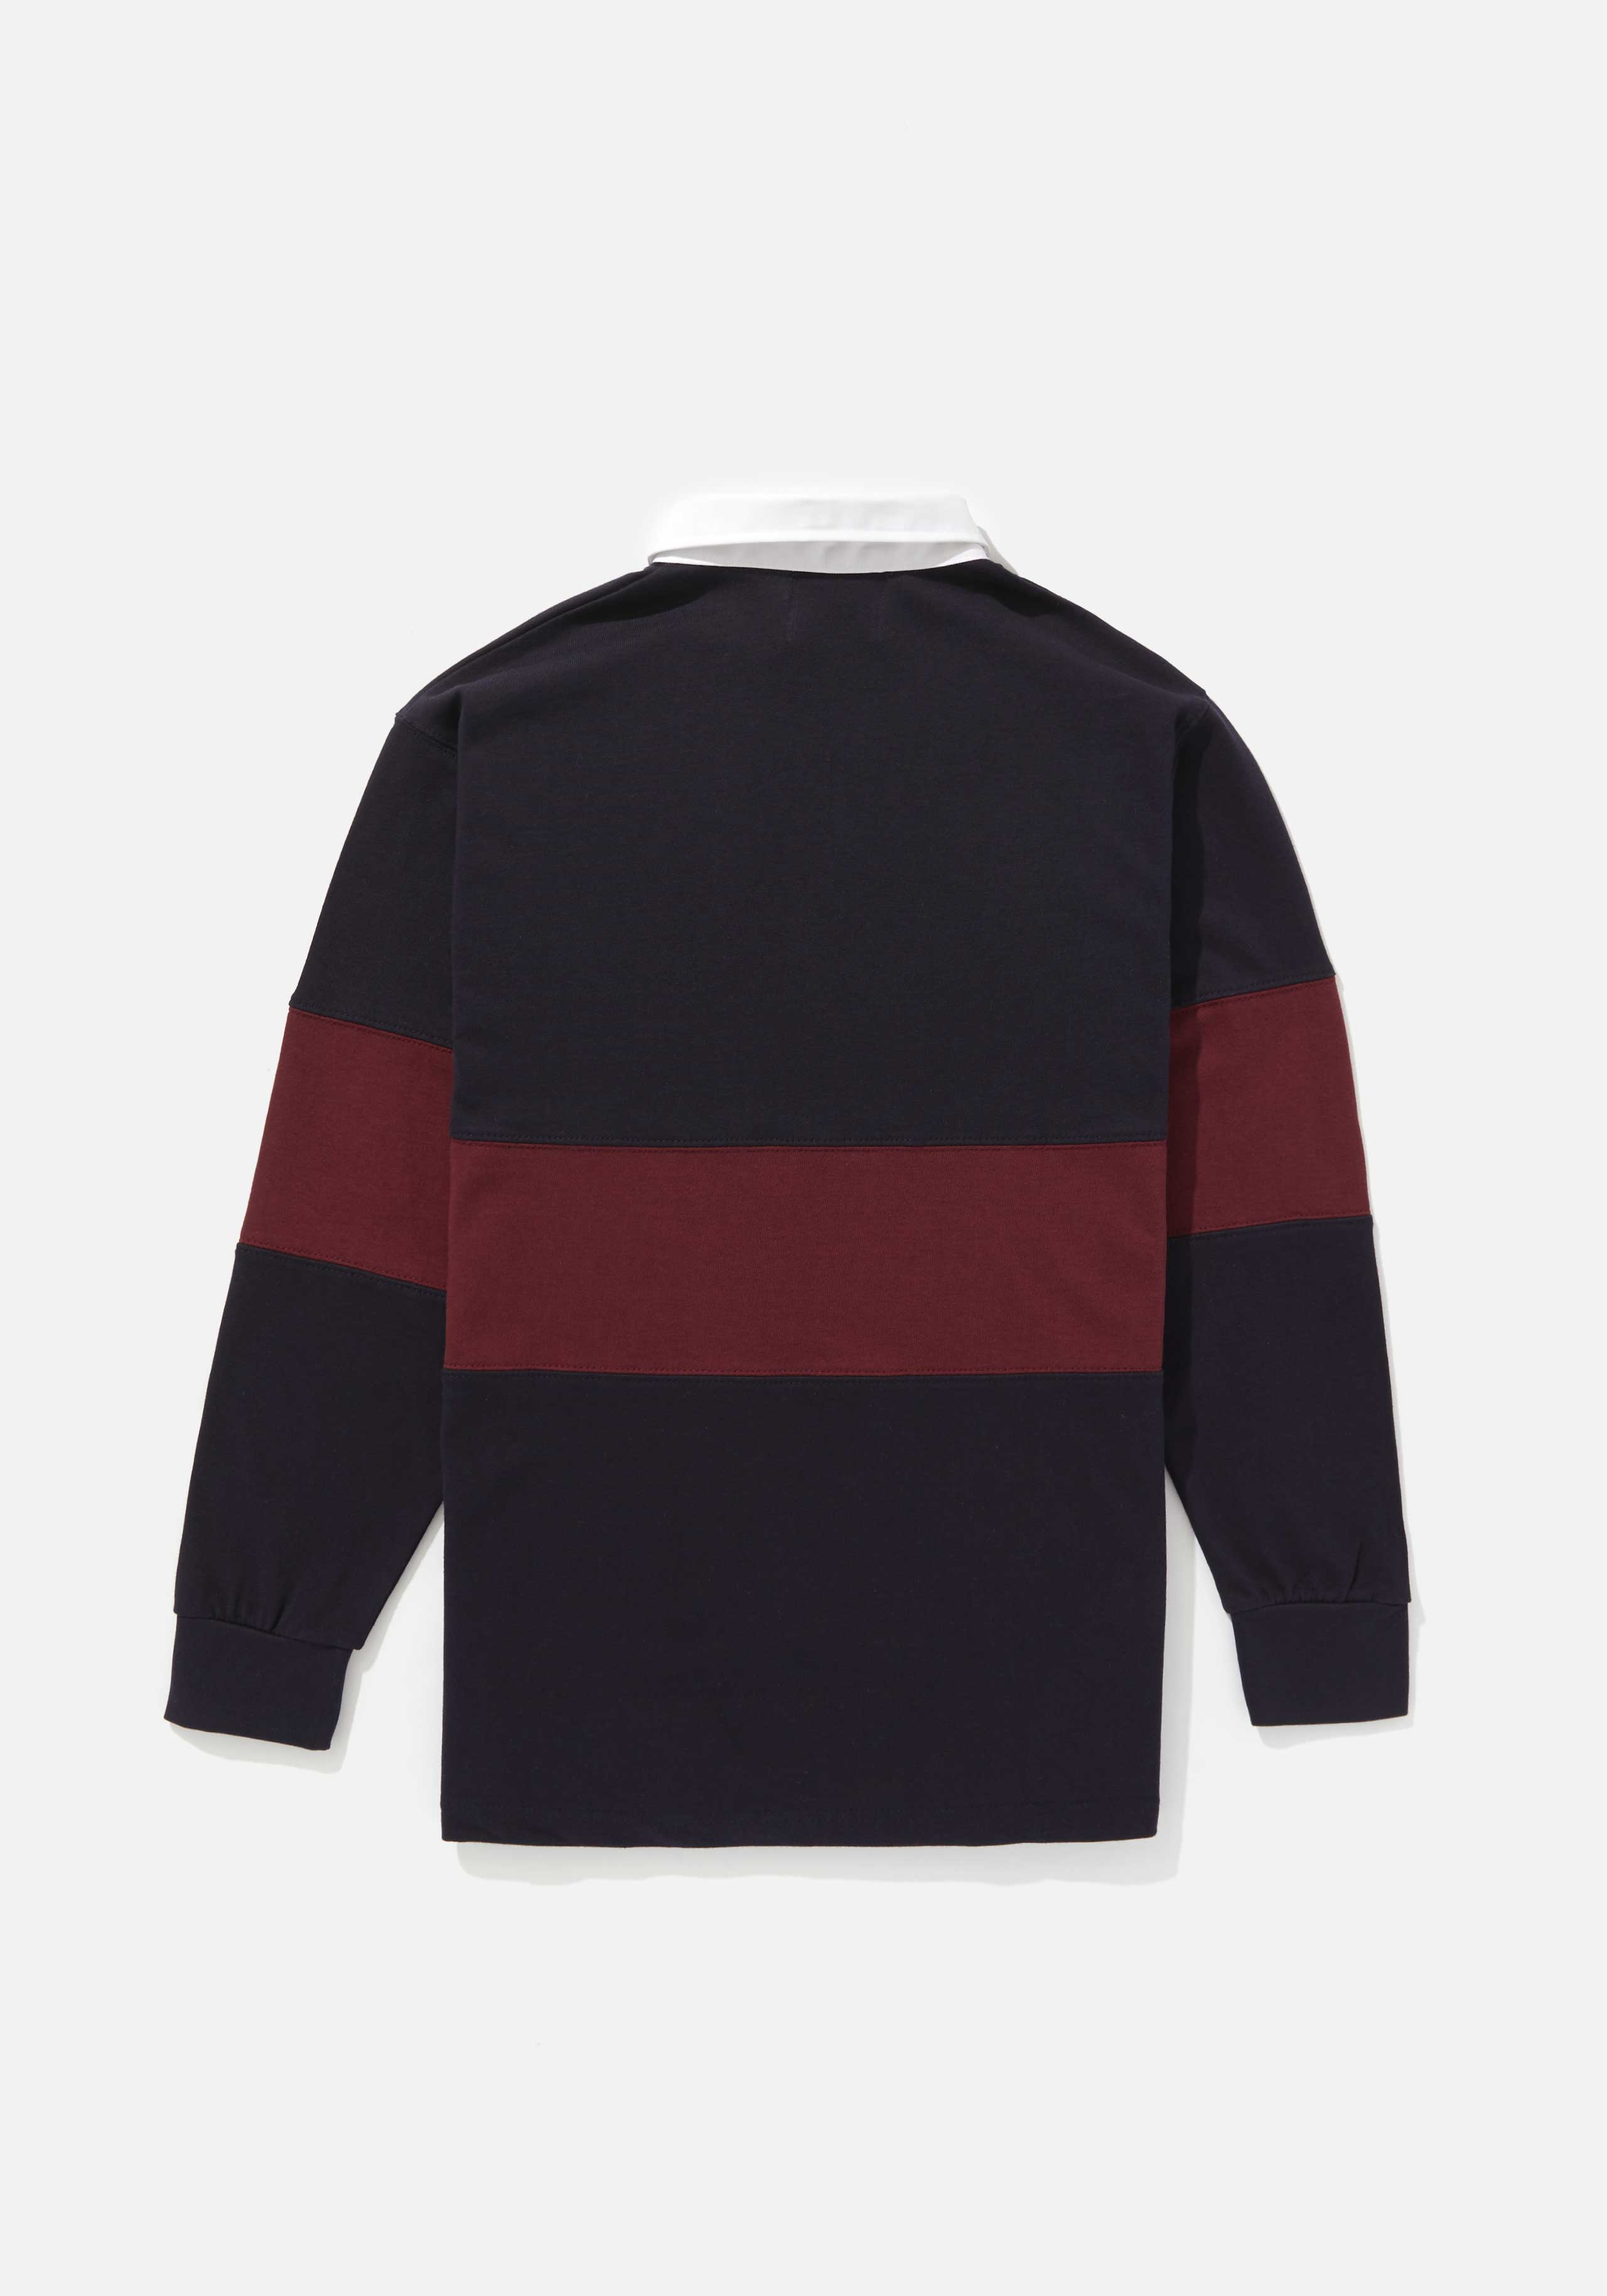 mki single stripe rugby shirt 2